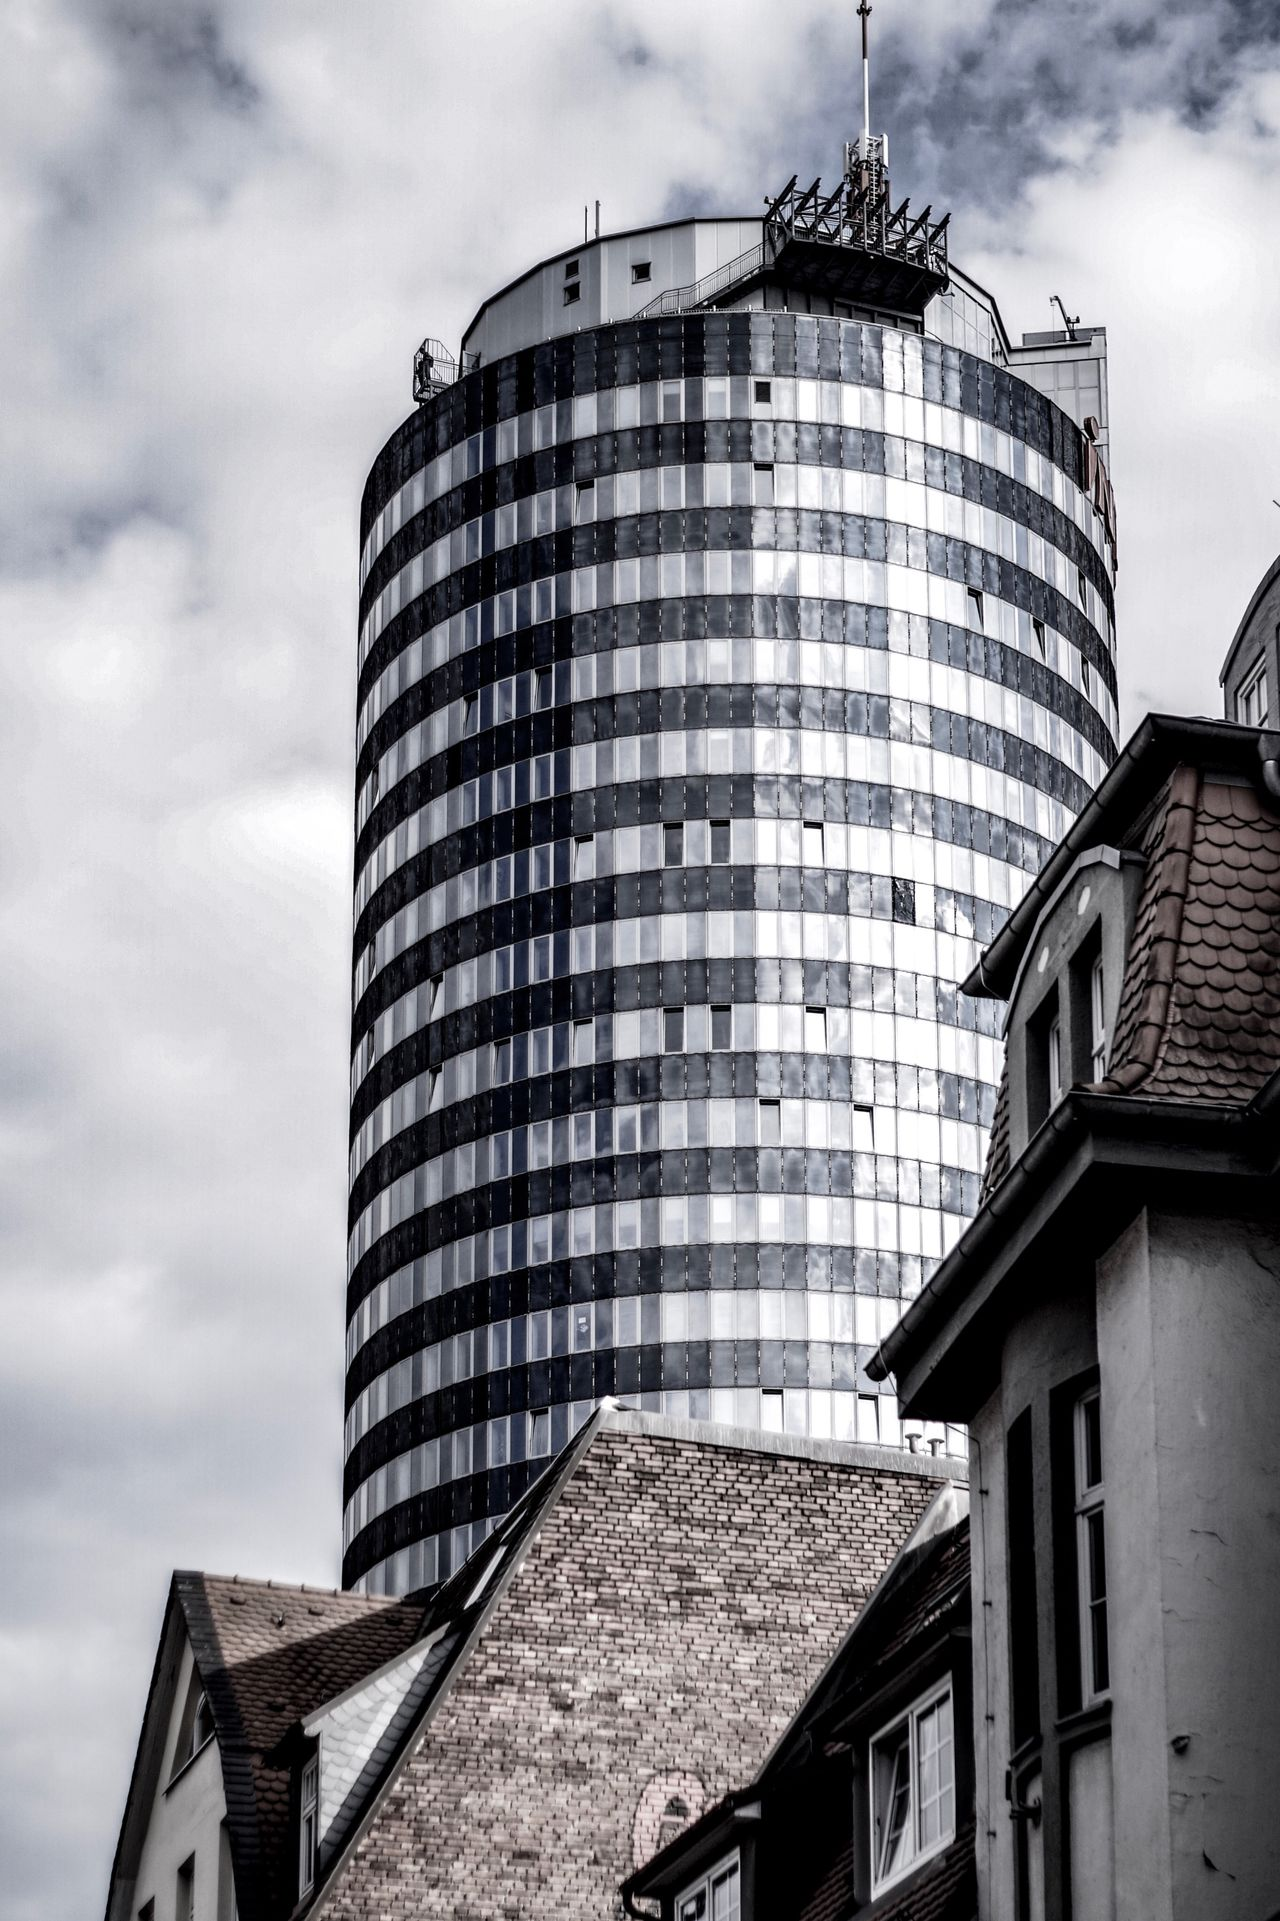 Architecture Architecture Building Exterior Built Structure Low Angle View Sky No People Day City Outdoors Cloud - Sky